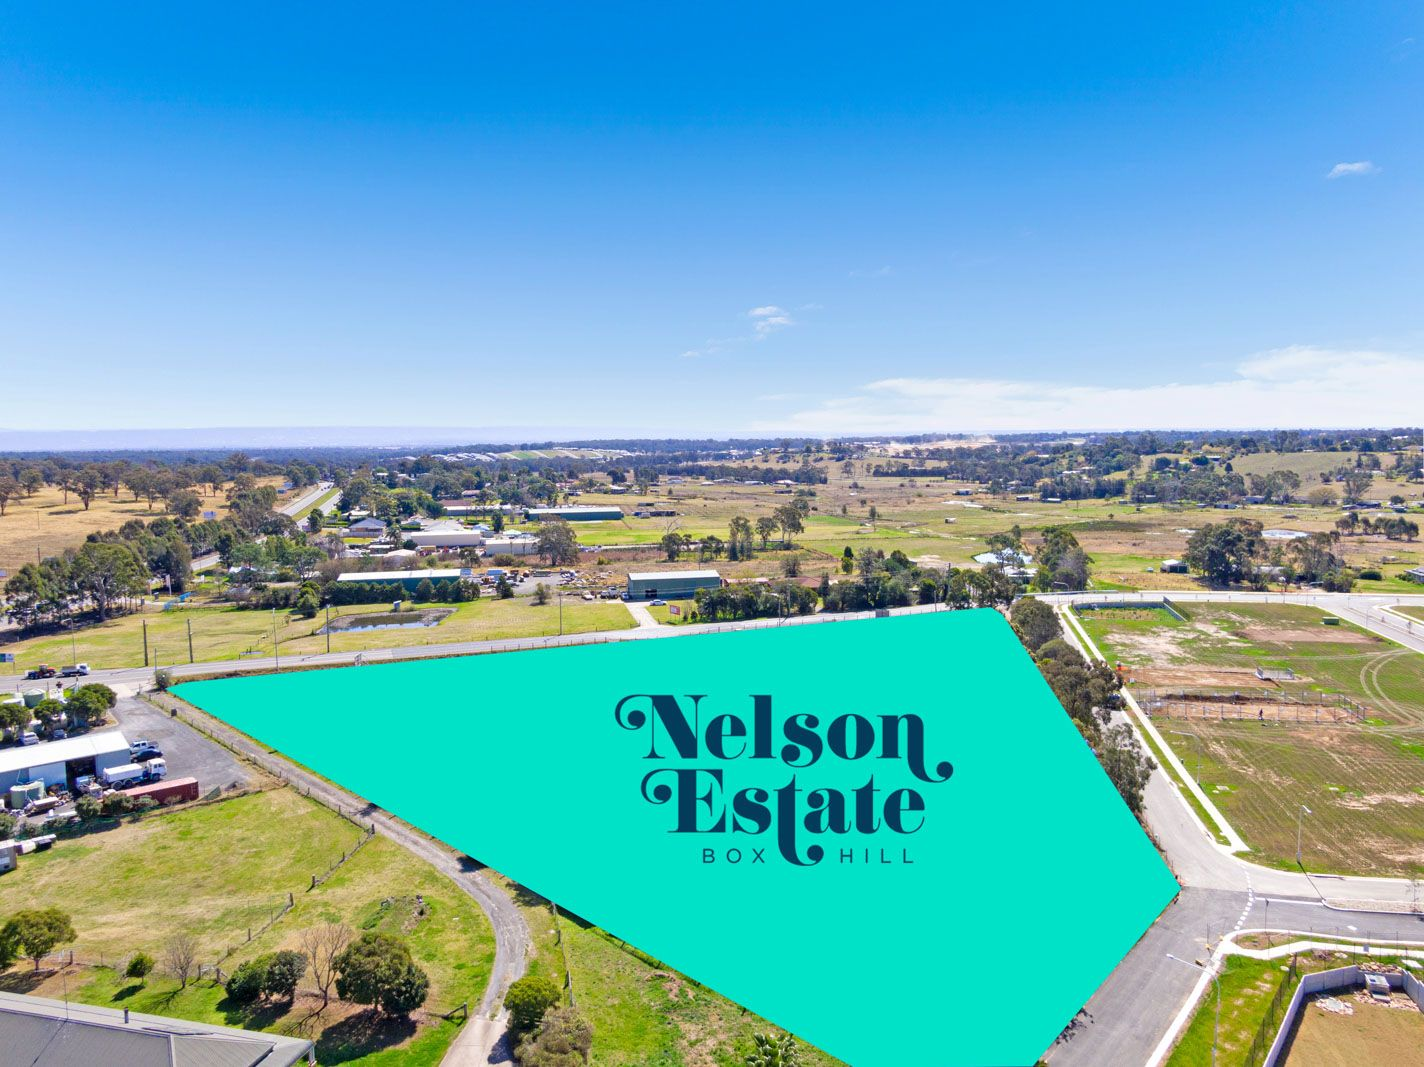 3 Nelson Road, Box Hill NSW 2765